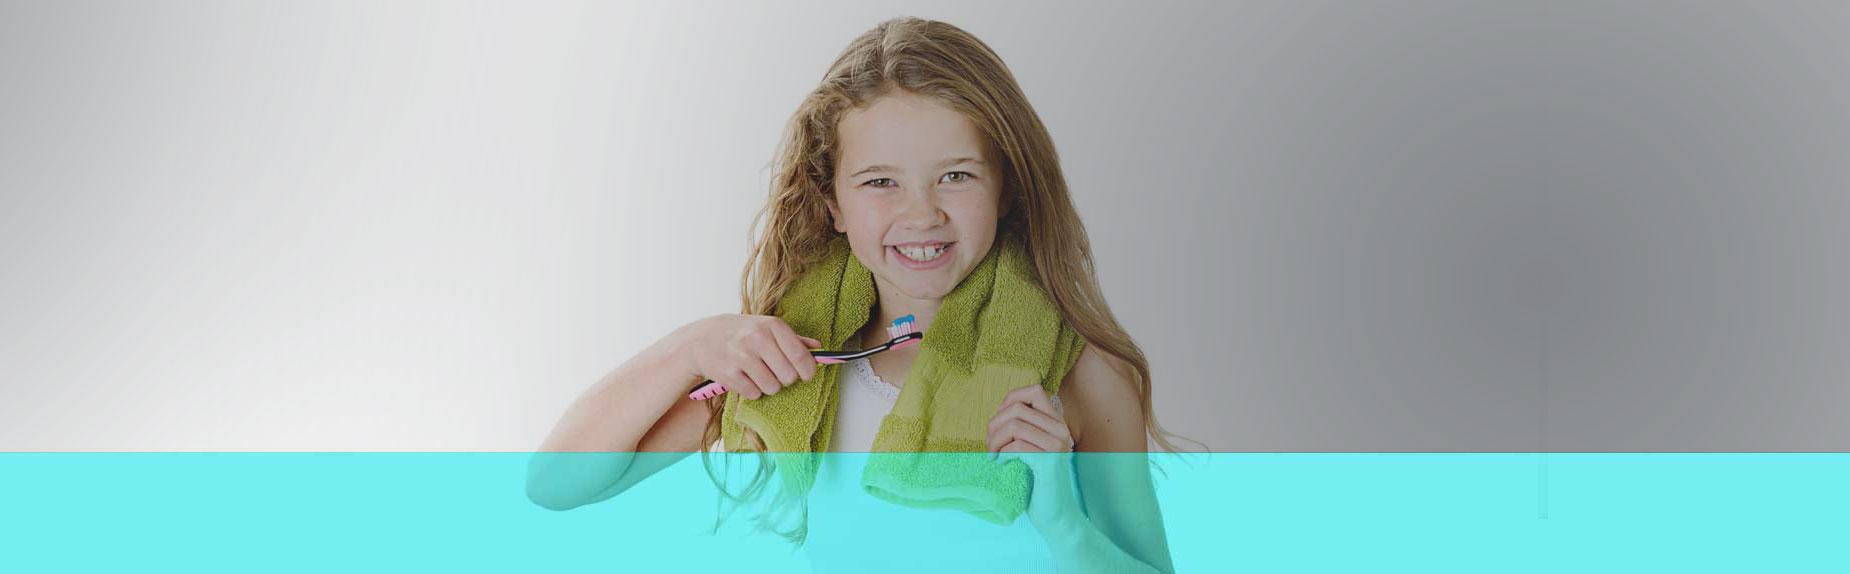 Pediatric Dental Care   Schedule an appointment for your child today.